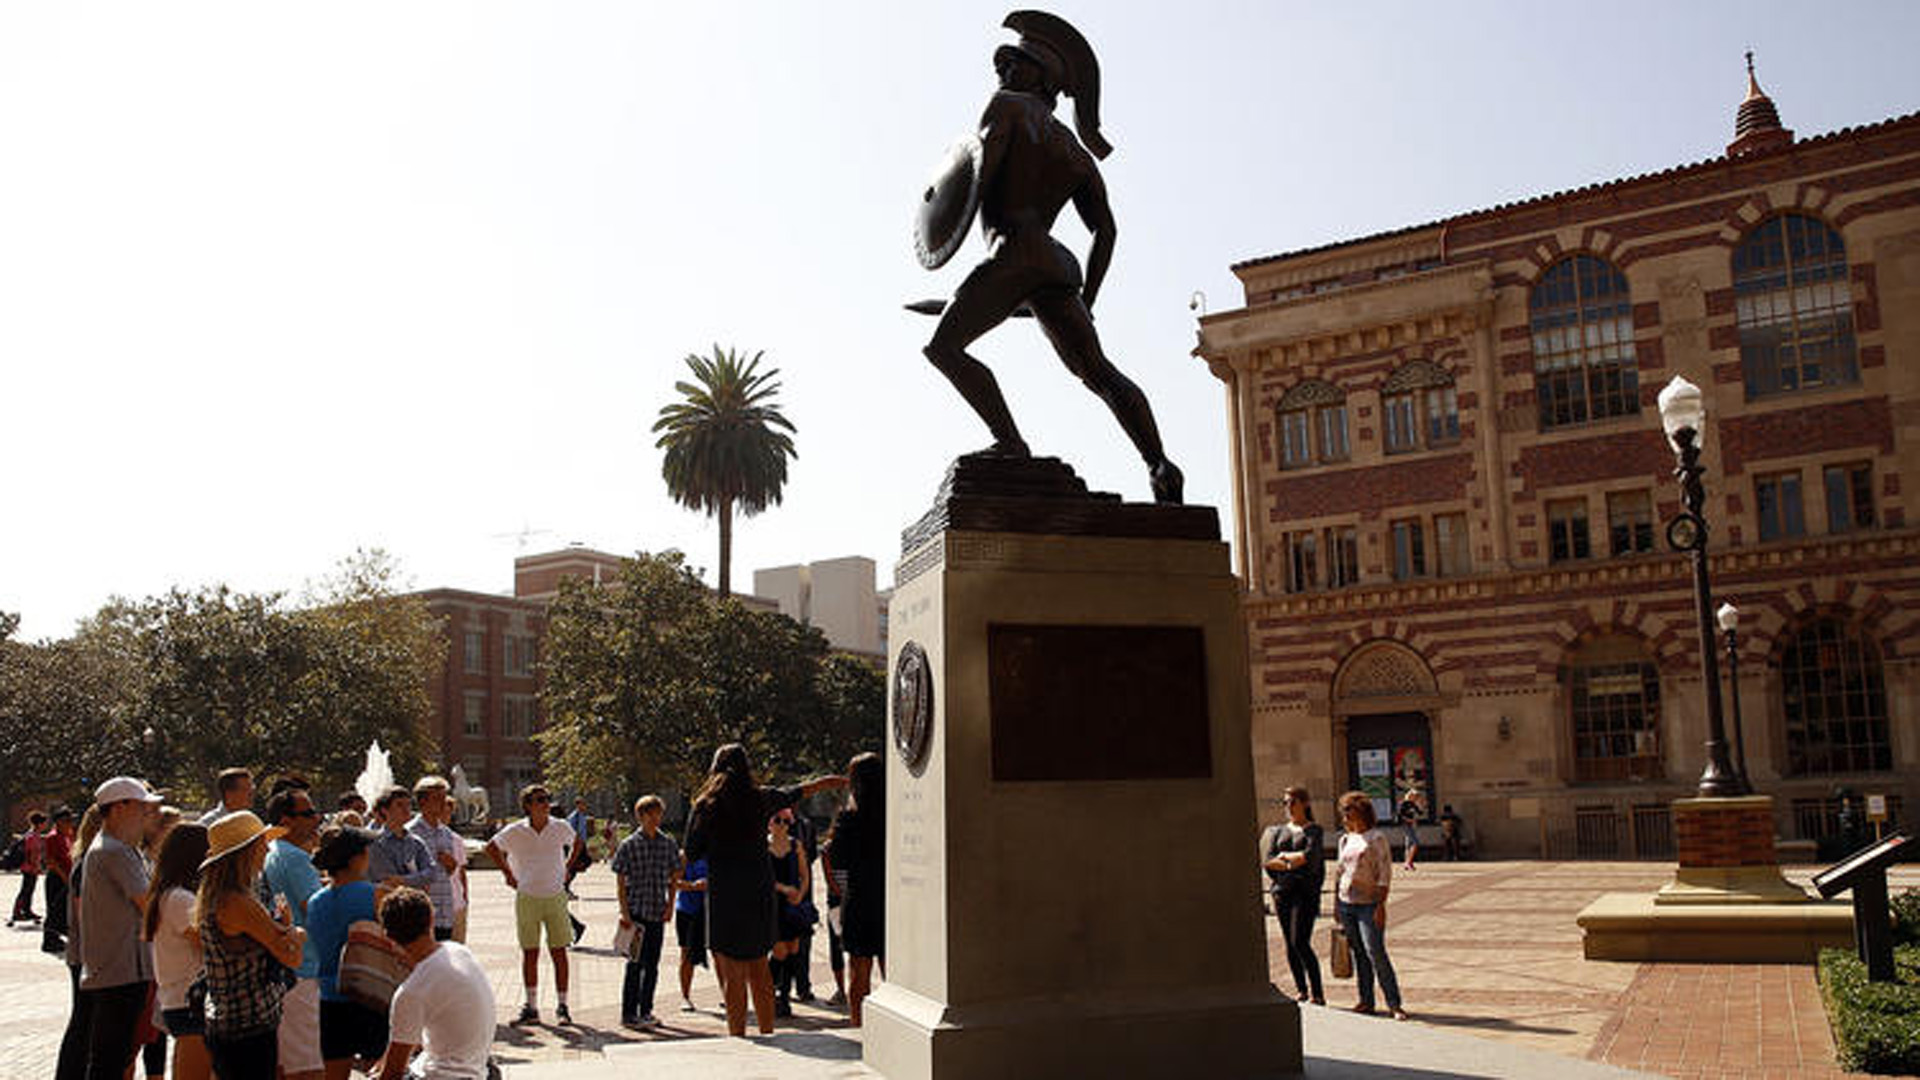 In this undated file photo, people gather around the Tommy Trojan statue at the center of USC's campus. (Al Seib / Los Angeles Times)